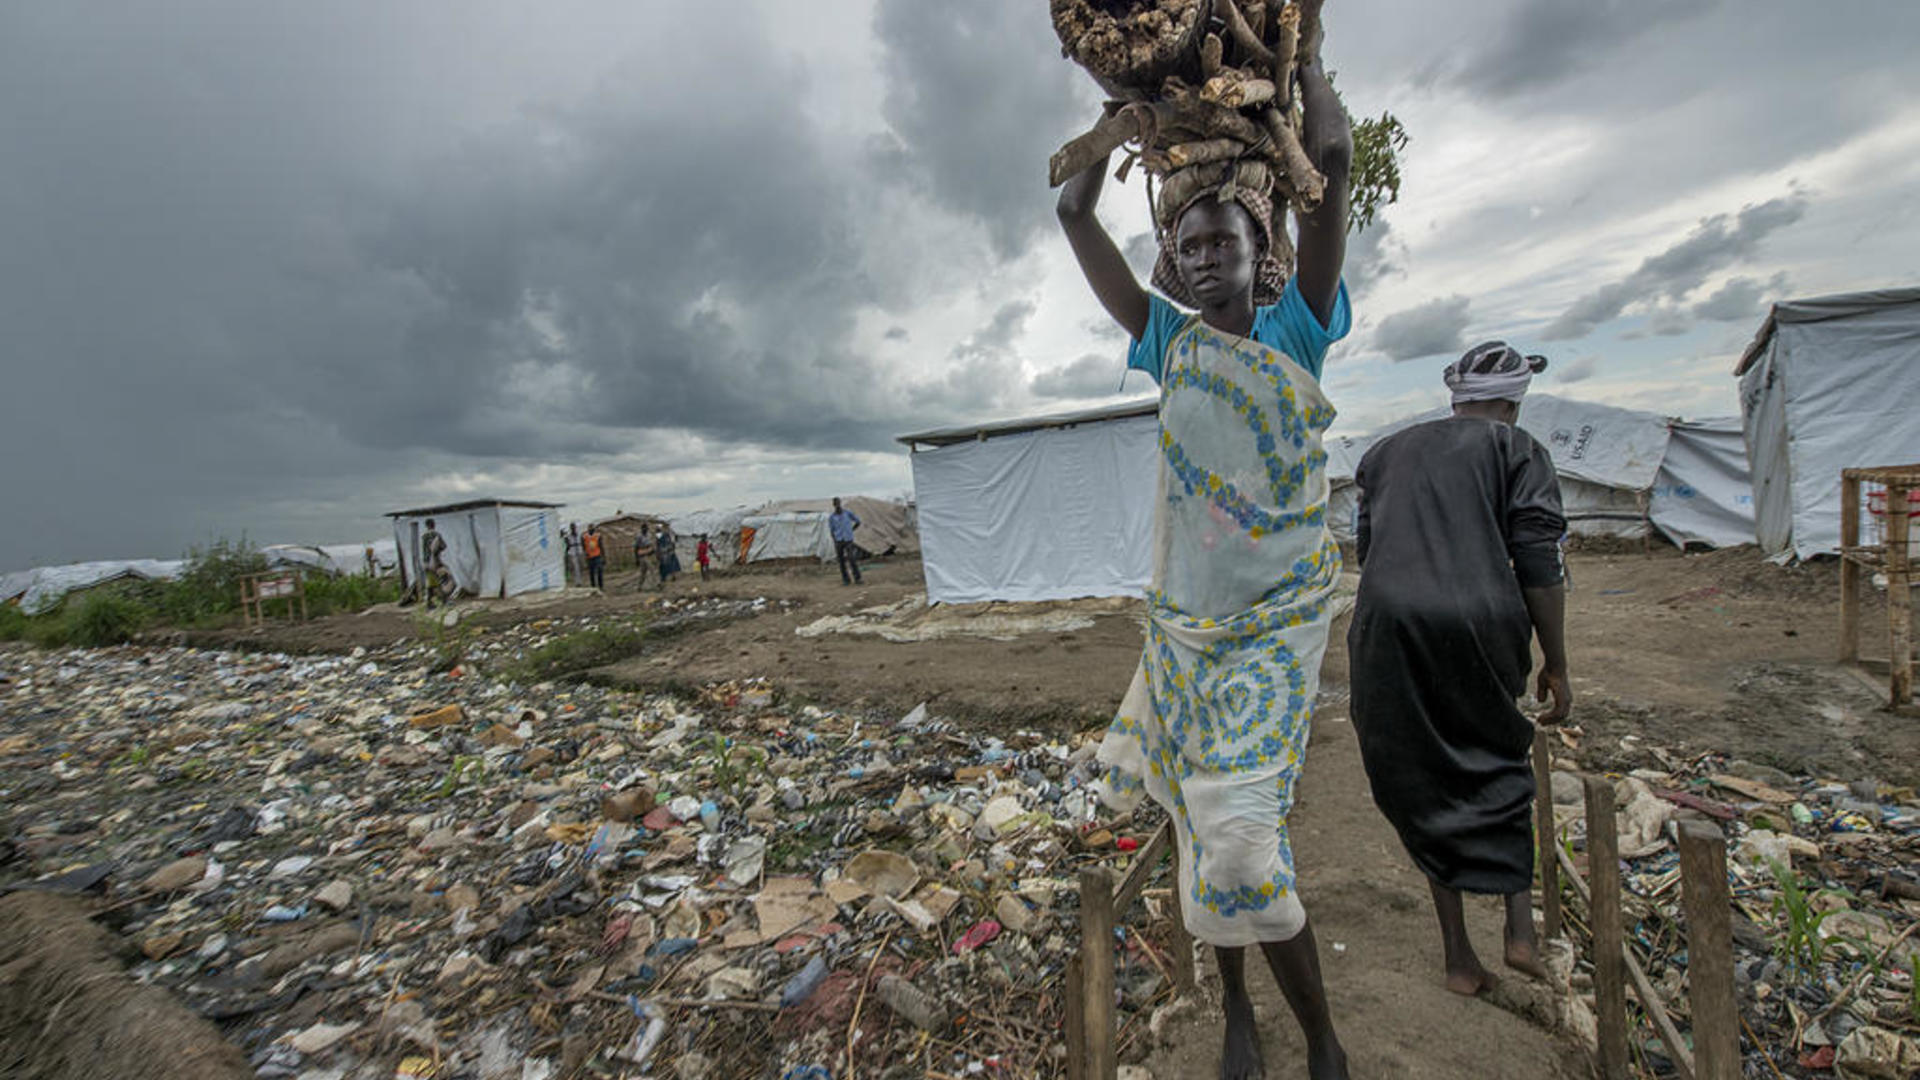 A woman carries firewood on her head in a camp for displaced people in South Sudan